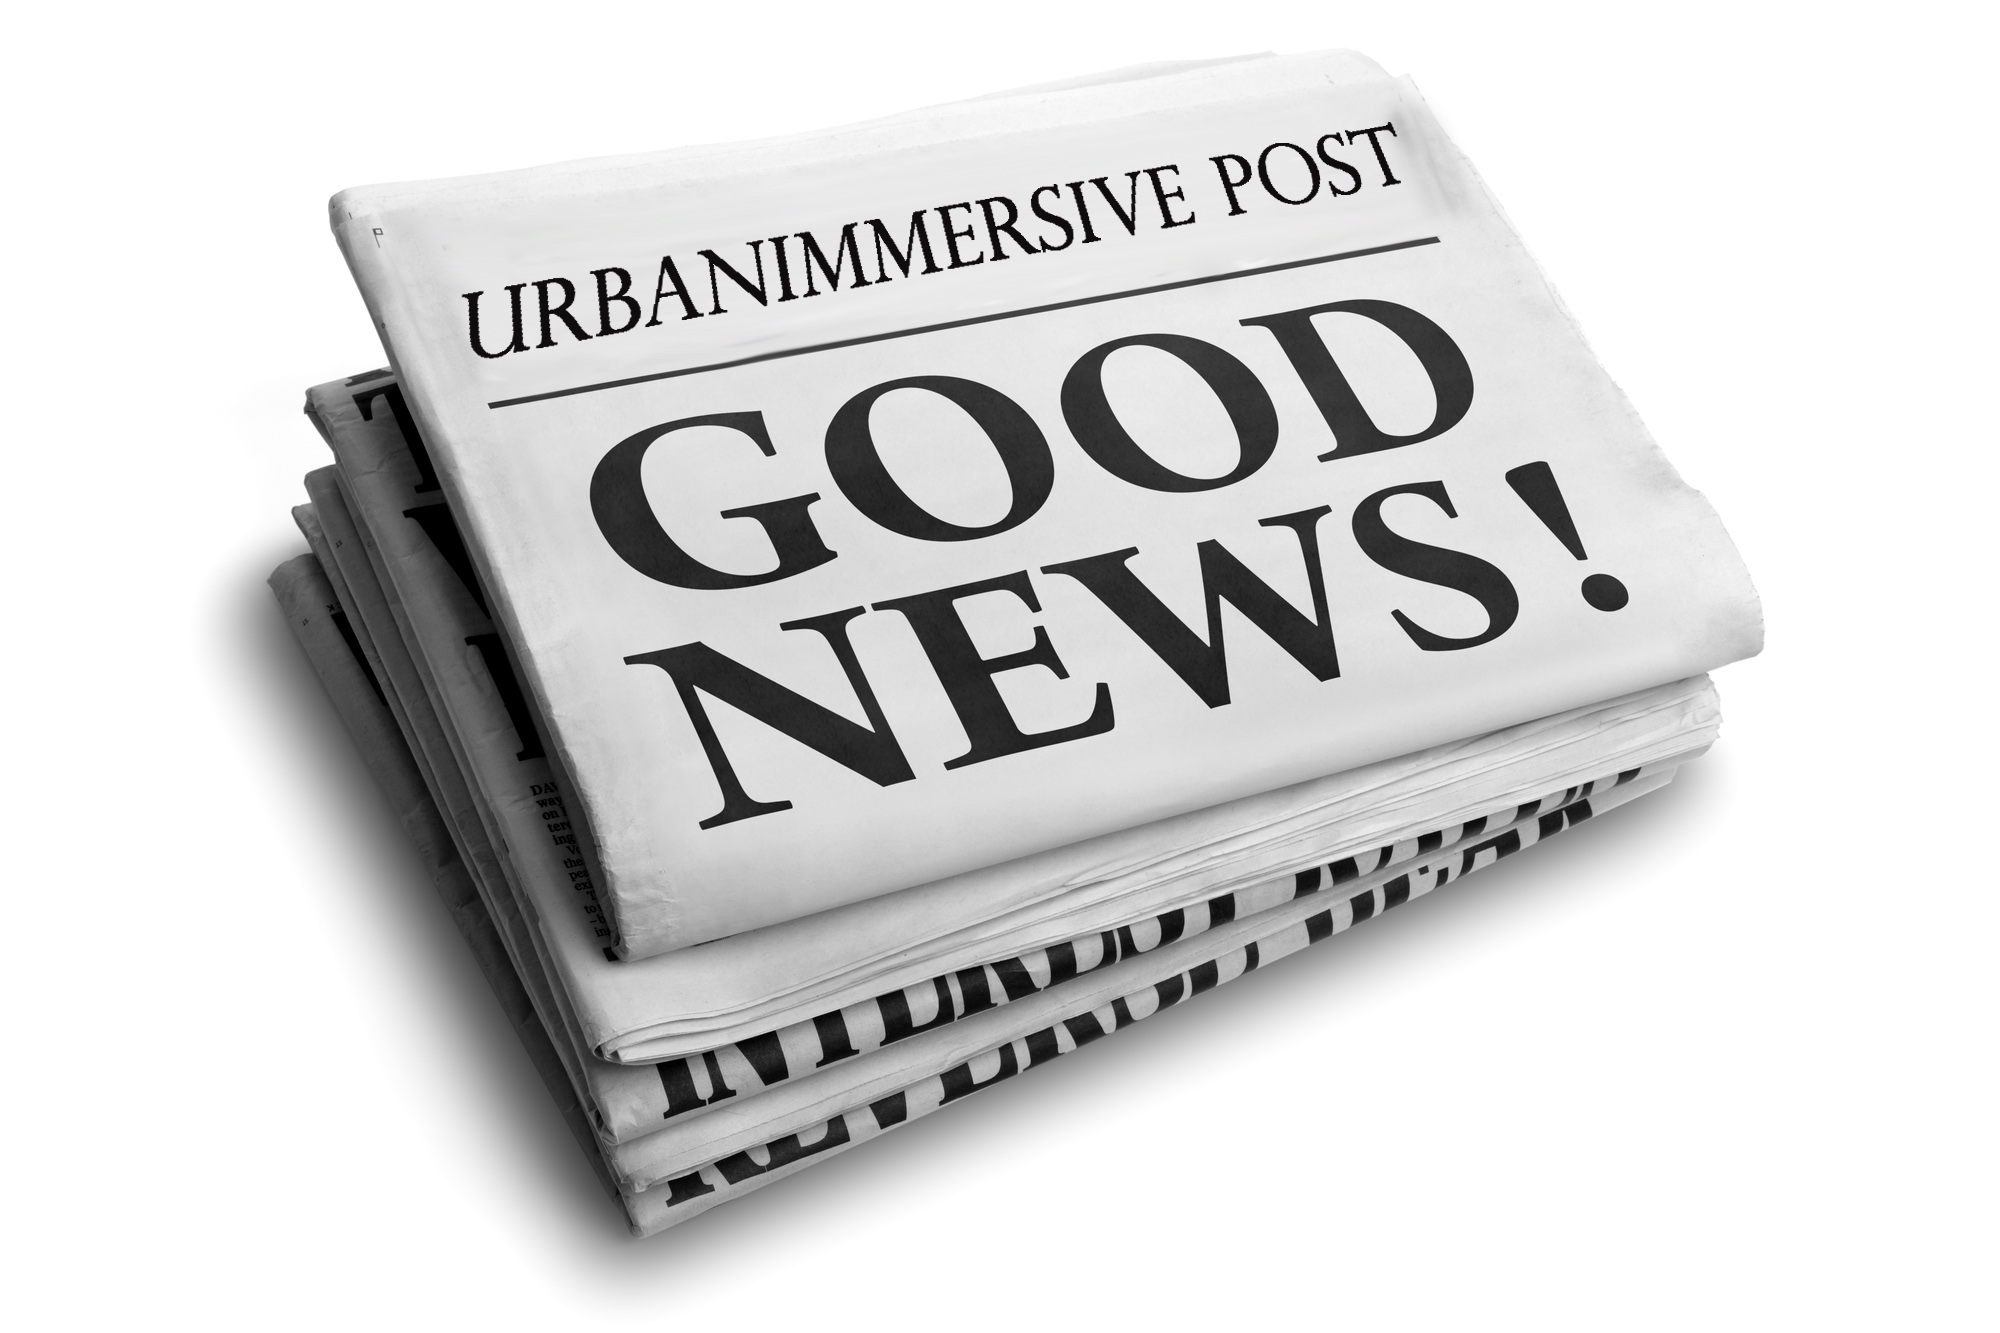 Urbanimmersive Provides Preliminary Revenue for Unaudited Q4 2018 and Business Update